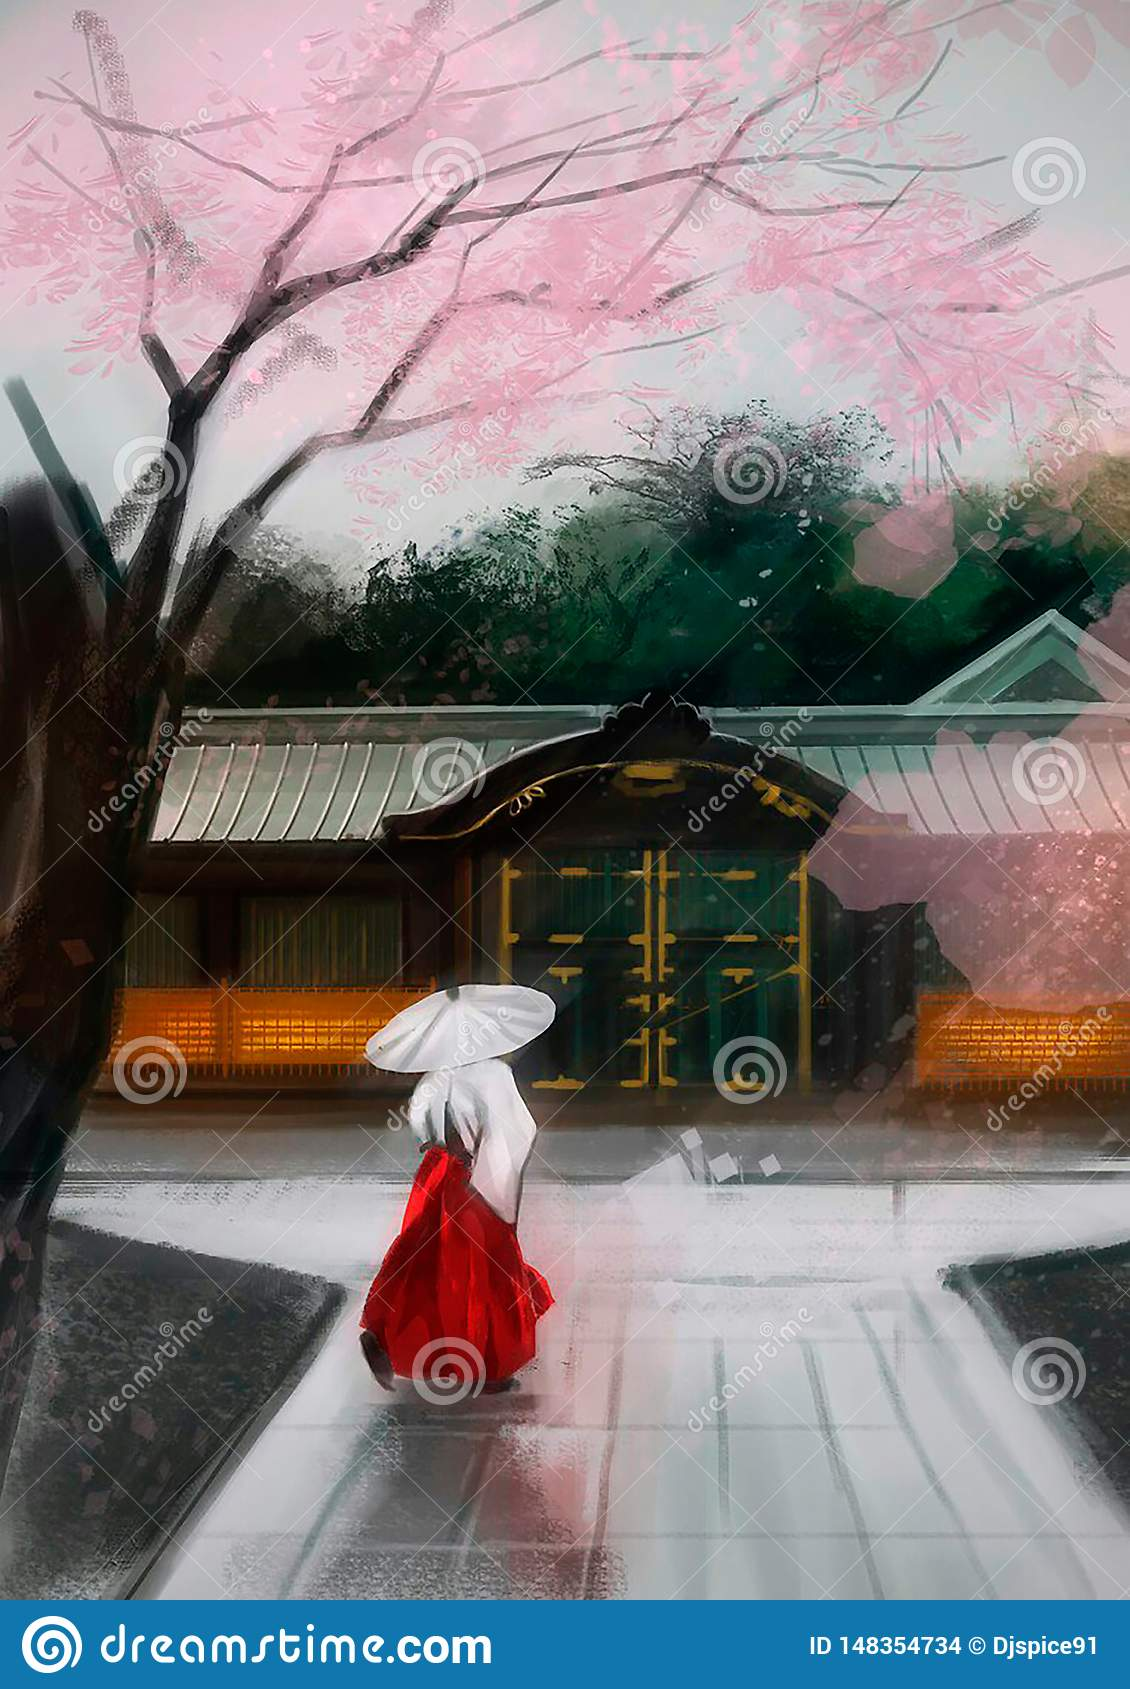 Illustration of a Chinese woman near the house